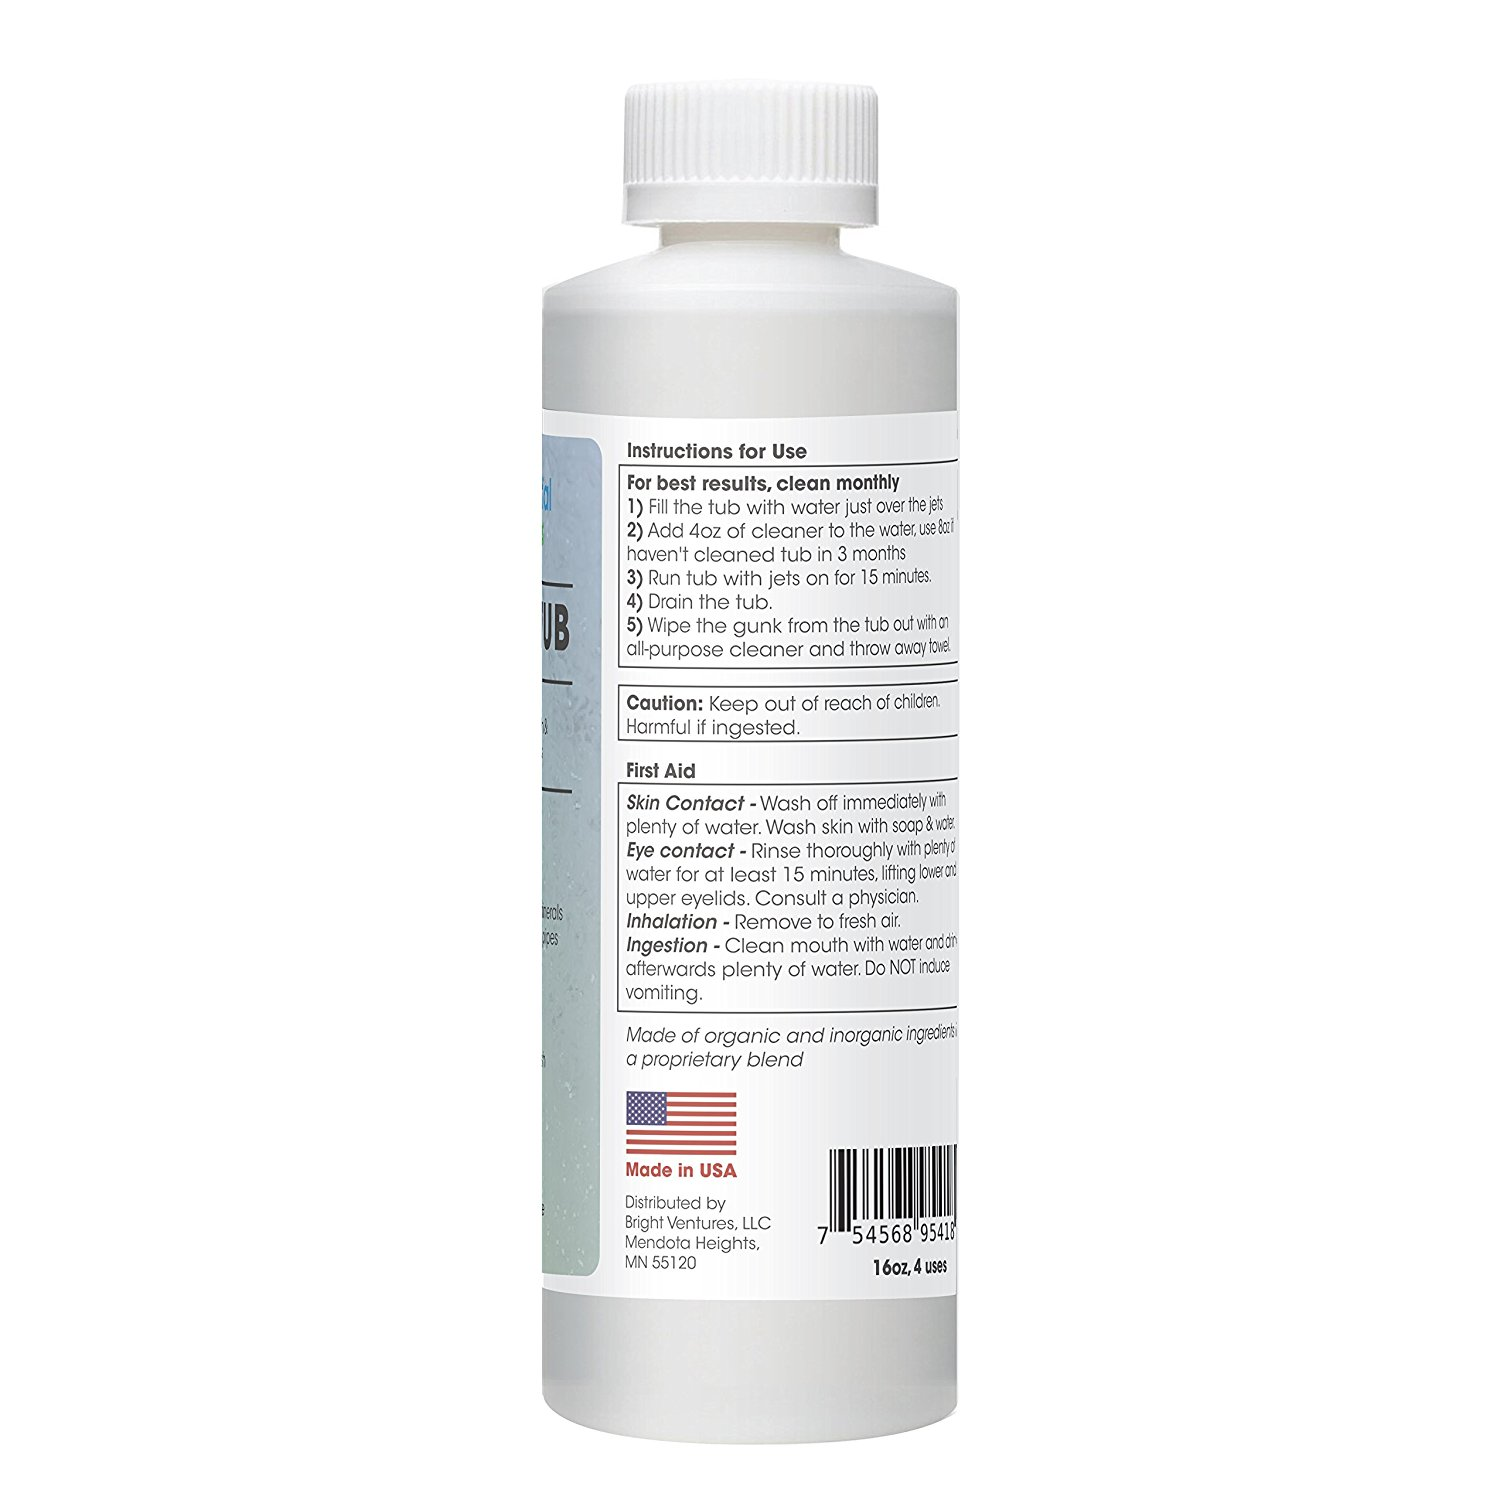 Jetted Tub Cleaner, Whirlpool Tub Cleaner (16oz / 4 uses) For Tubs ...